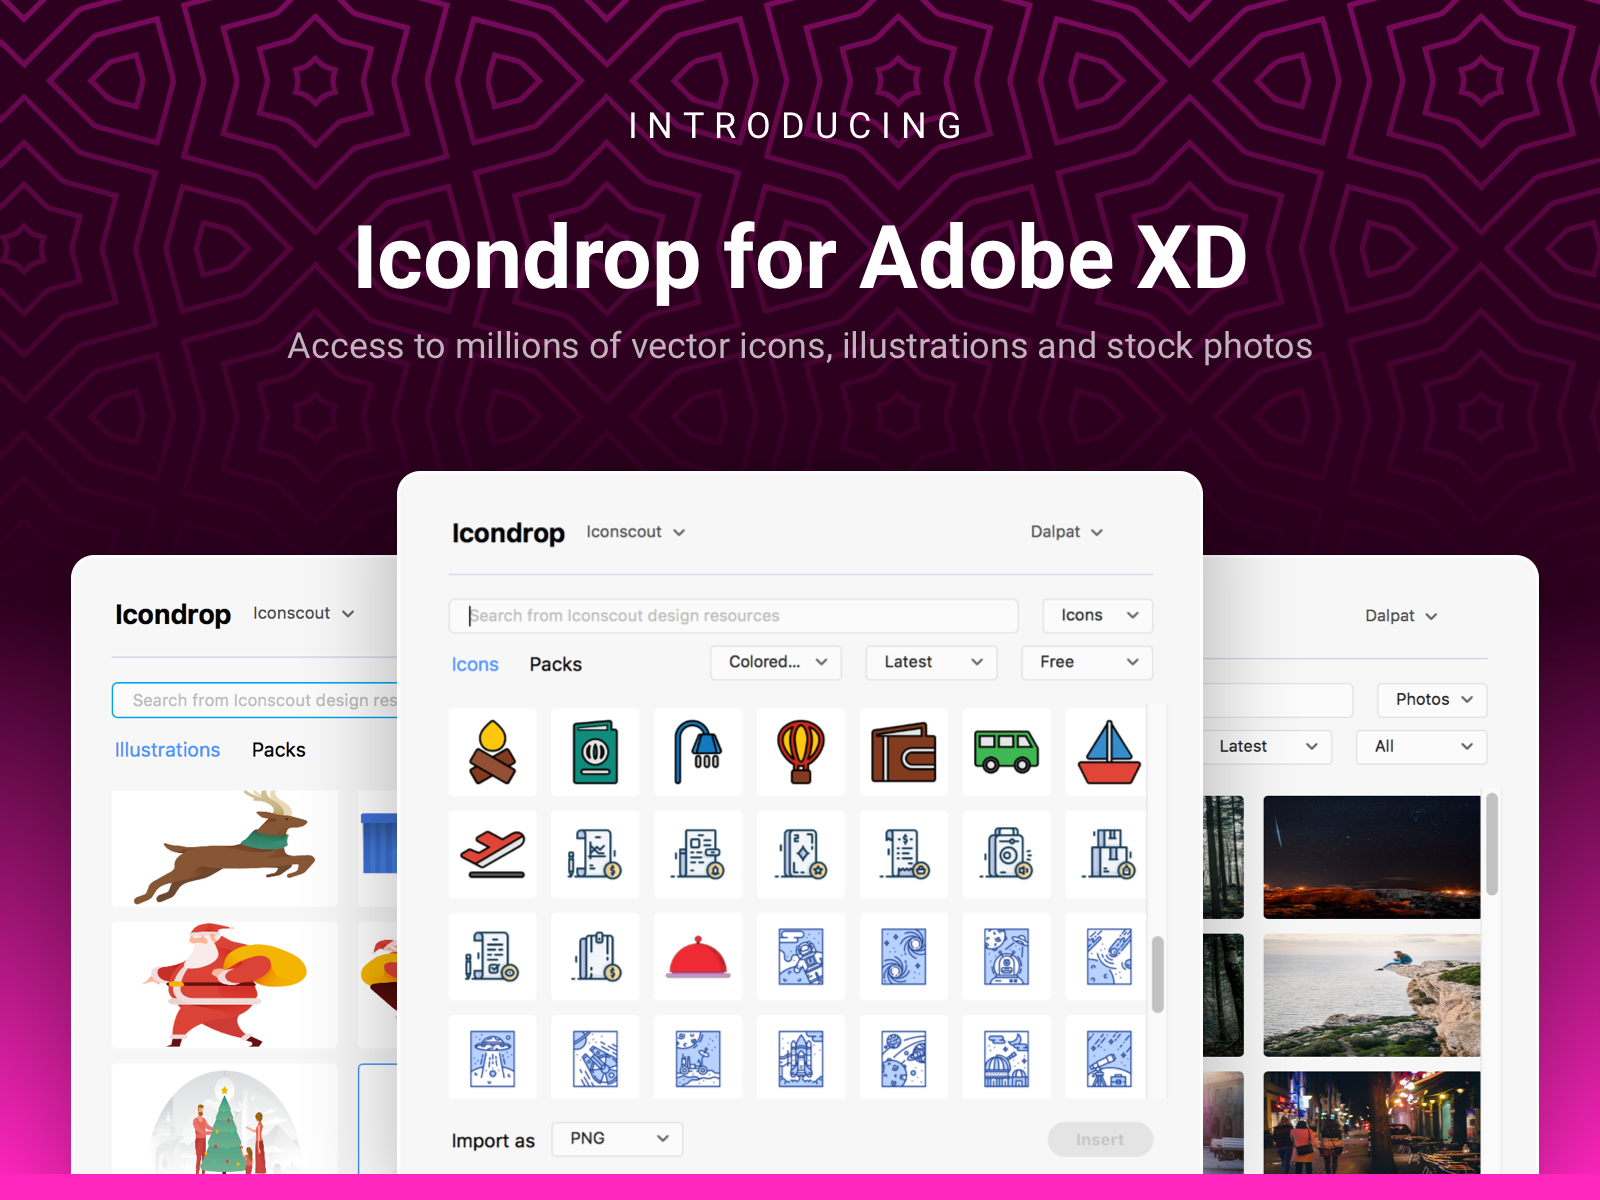 Introducing Icondrop for Adobe XD - Iconscout